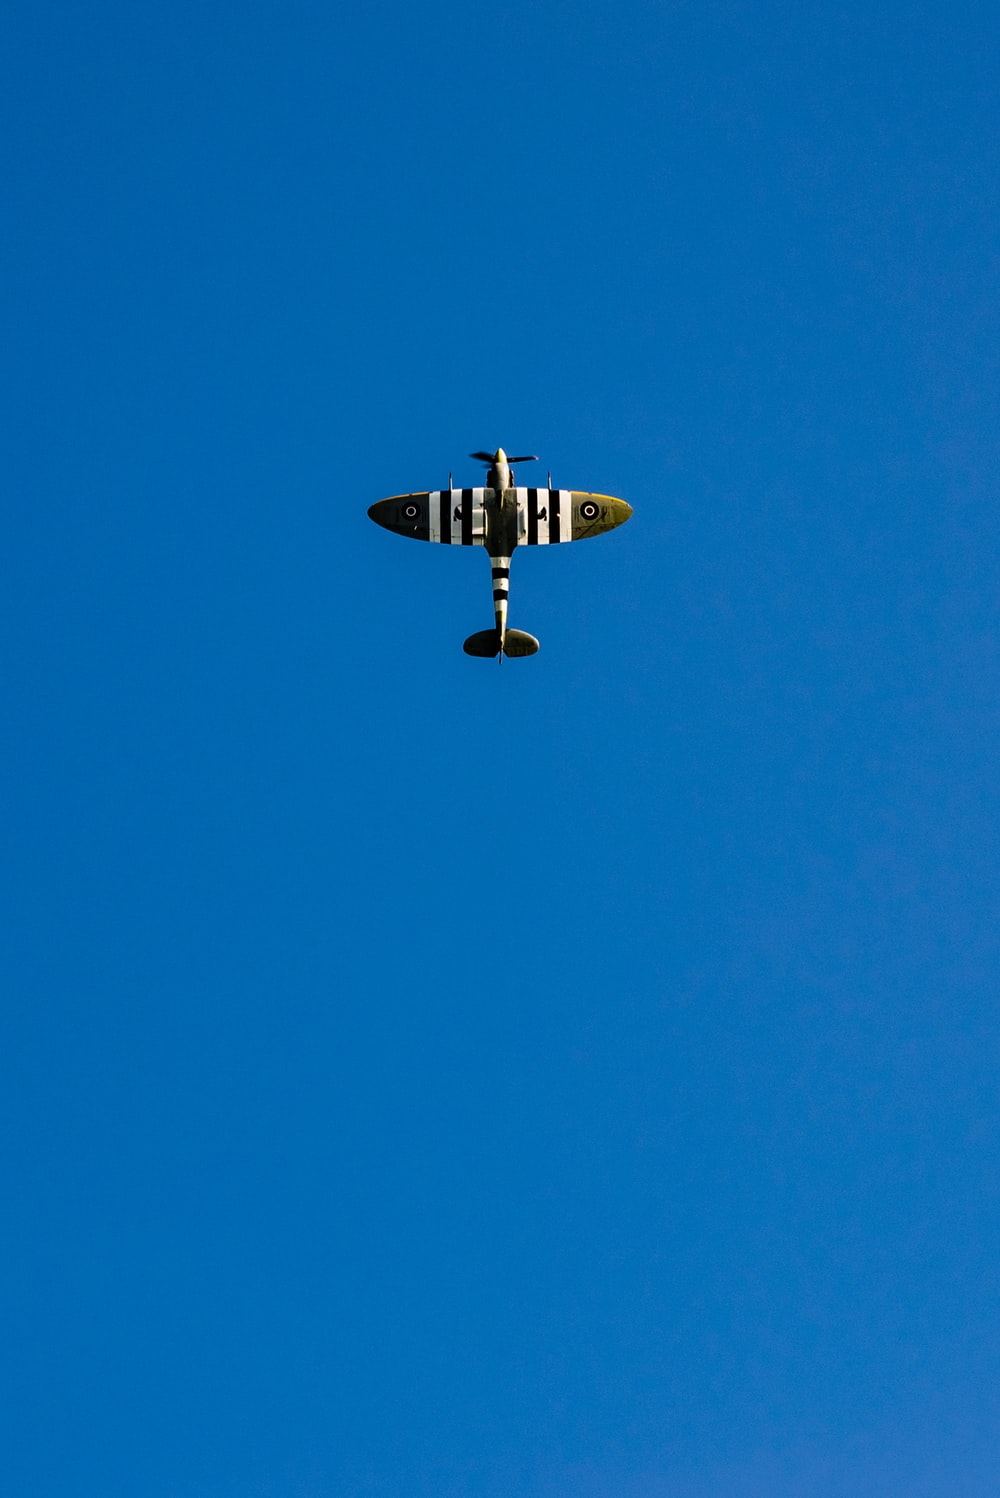 gray and white airplane under blue sky